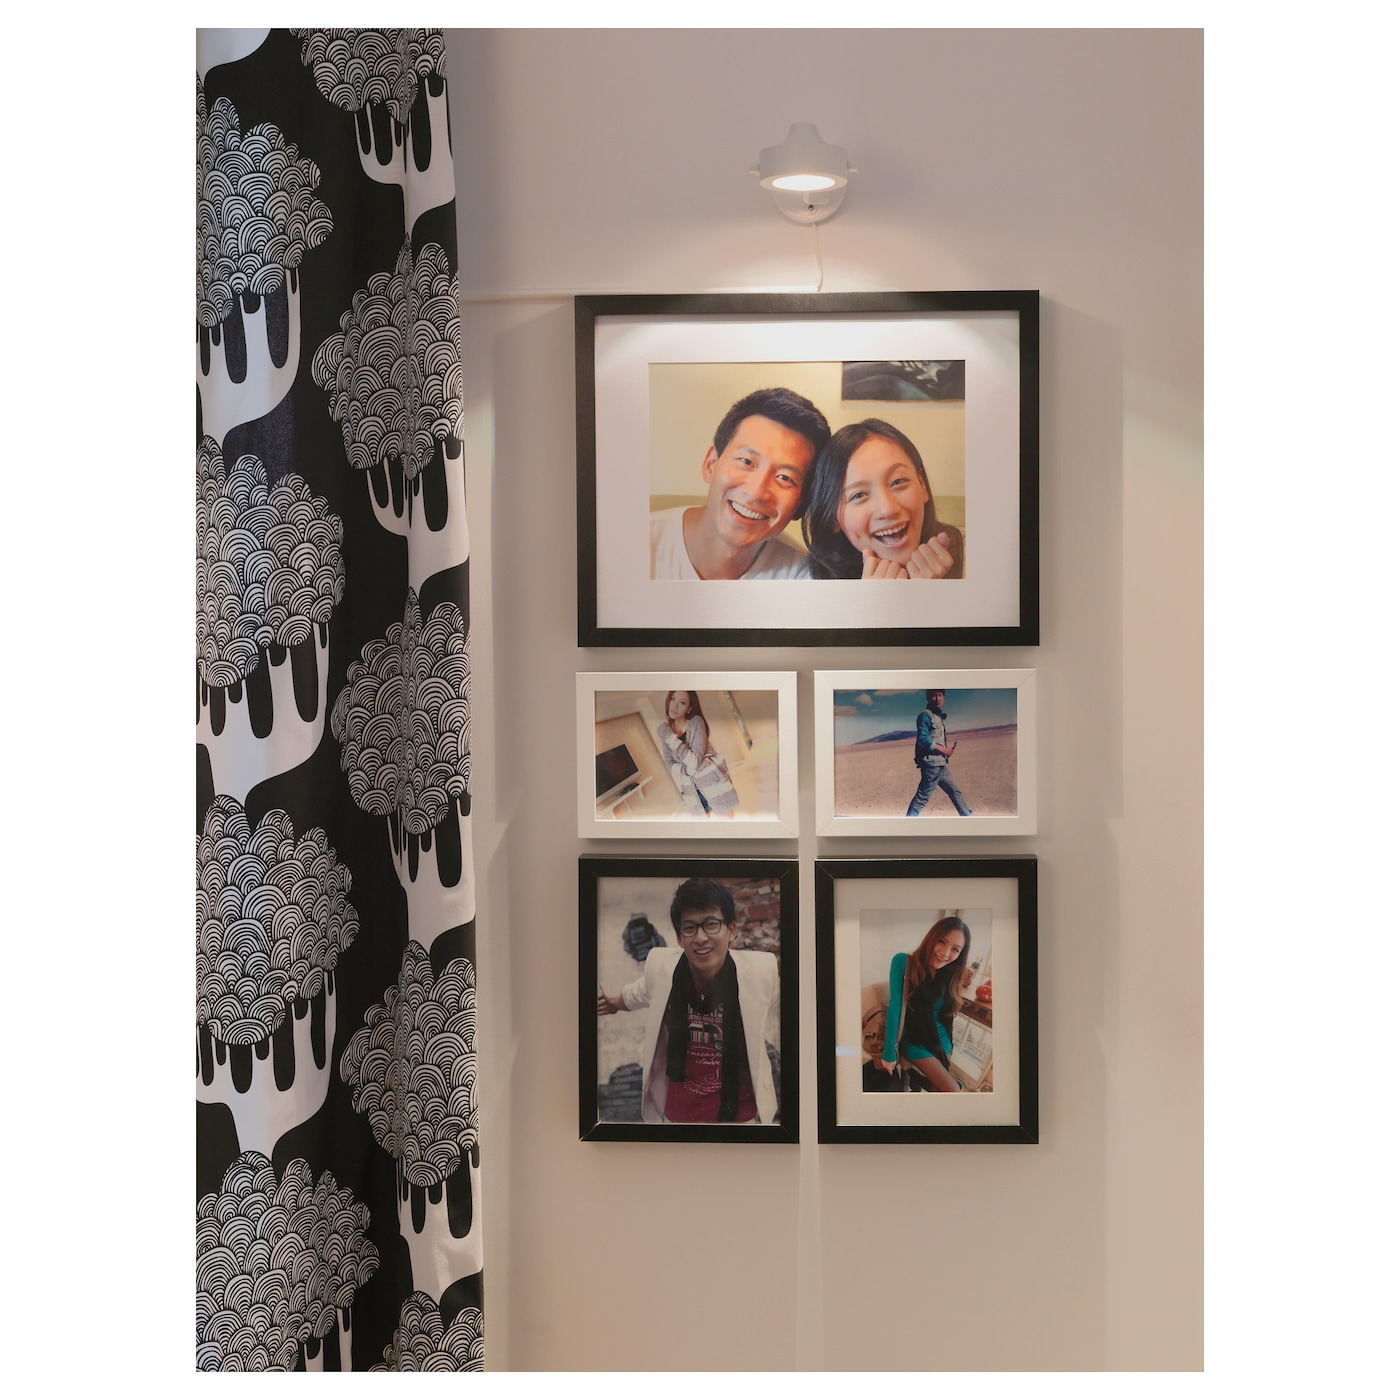 IKEA RIBBA frame Fits A4 size pictures if used with the mount.